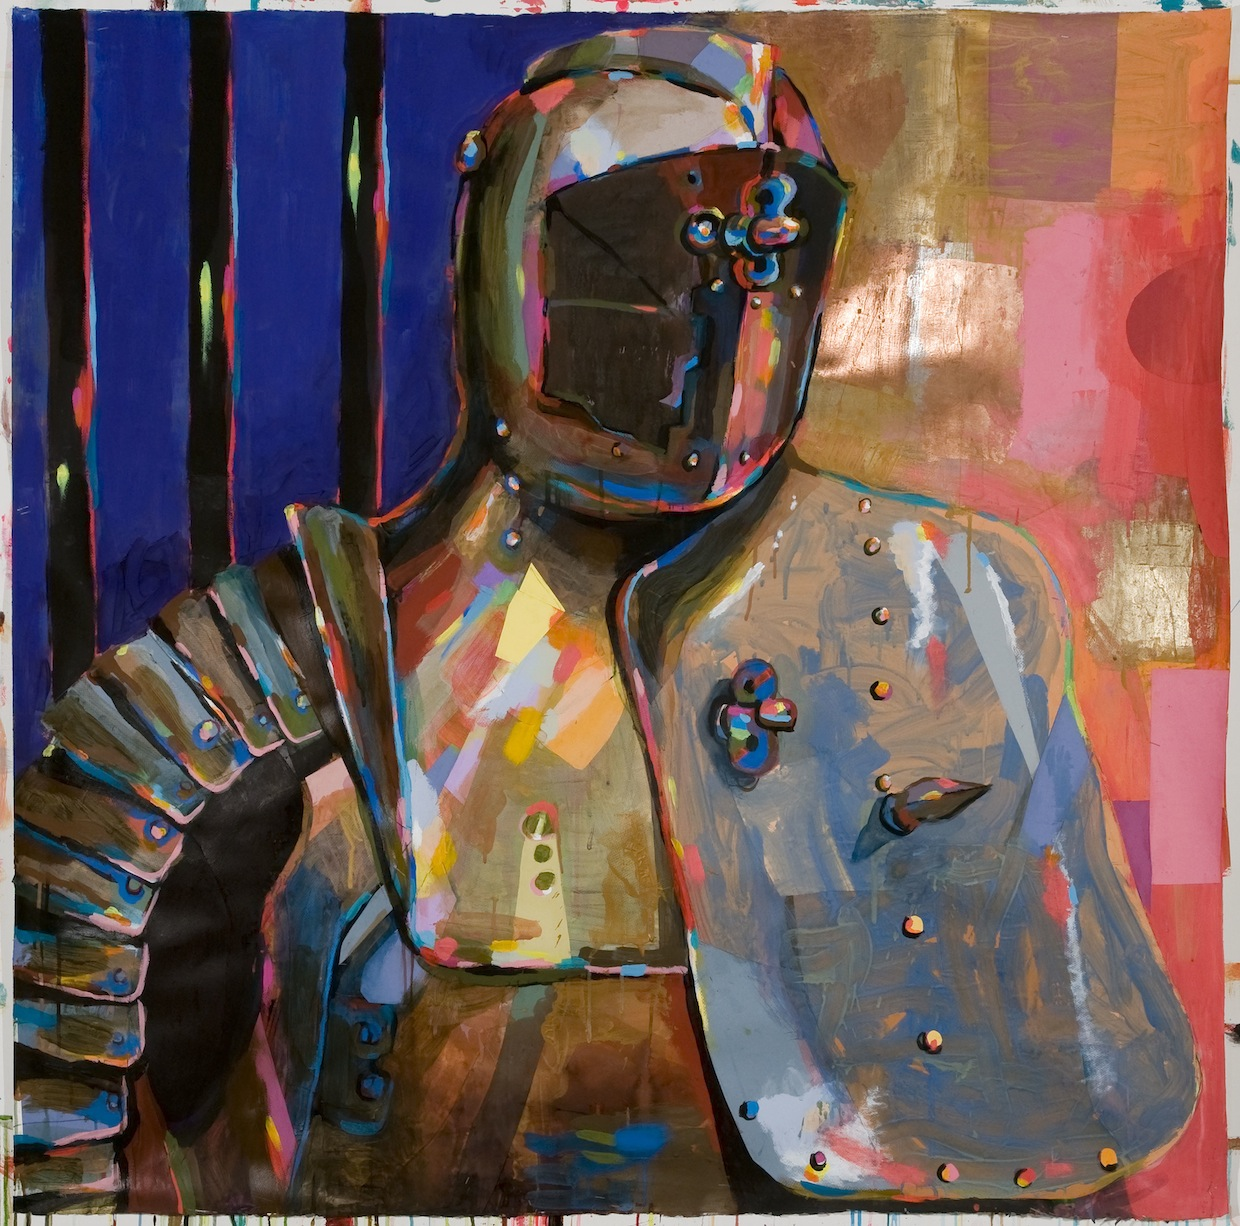 Battle Armor II , 2012, acrylic, ink, collage, gold and copper leaf on paper,51.5 x 52 inches